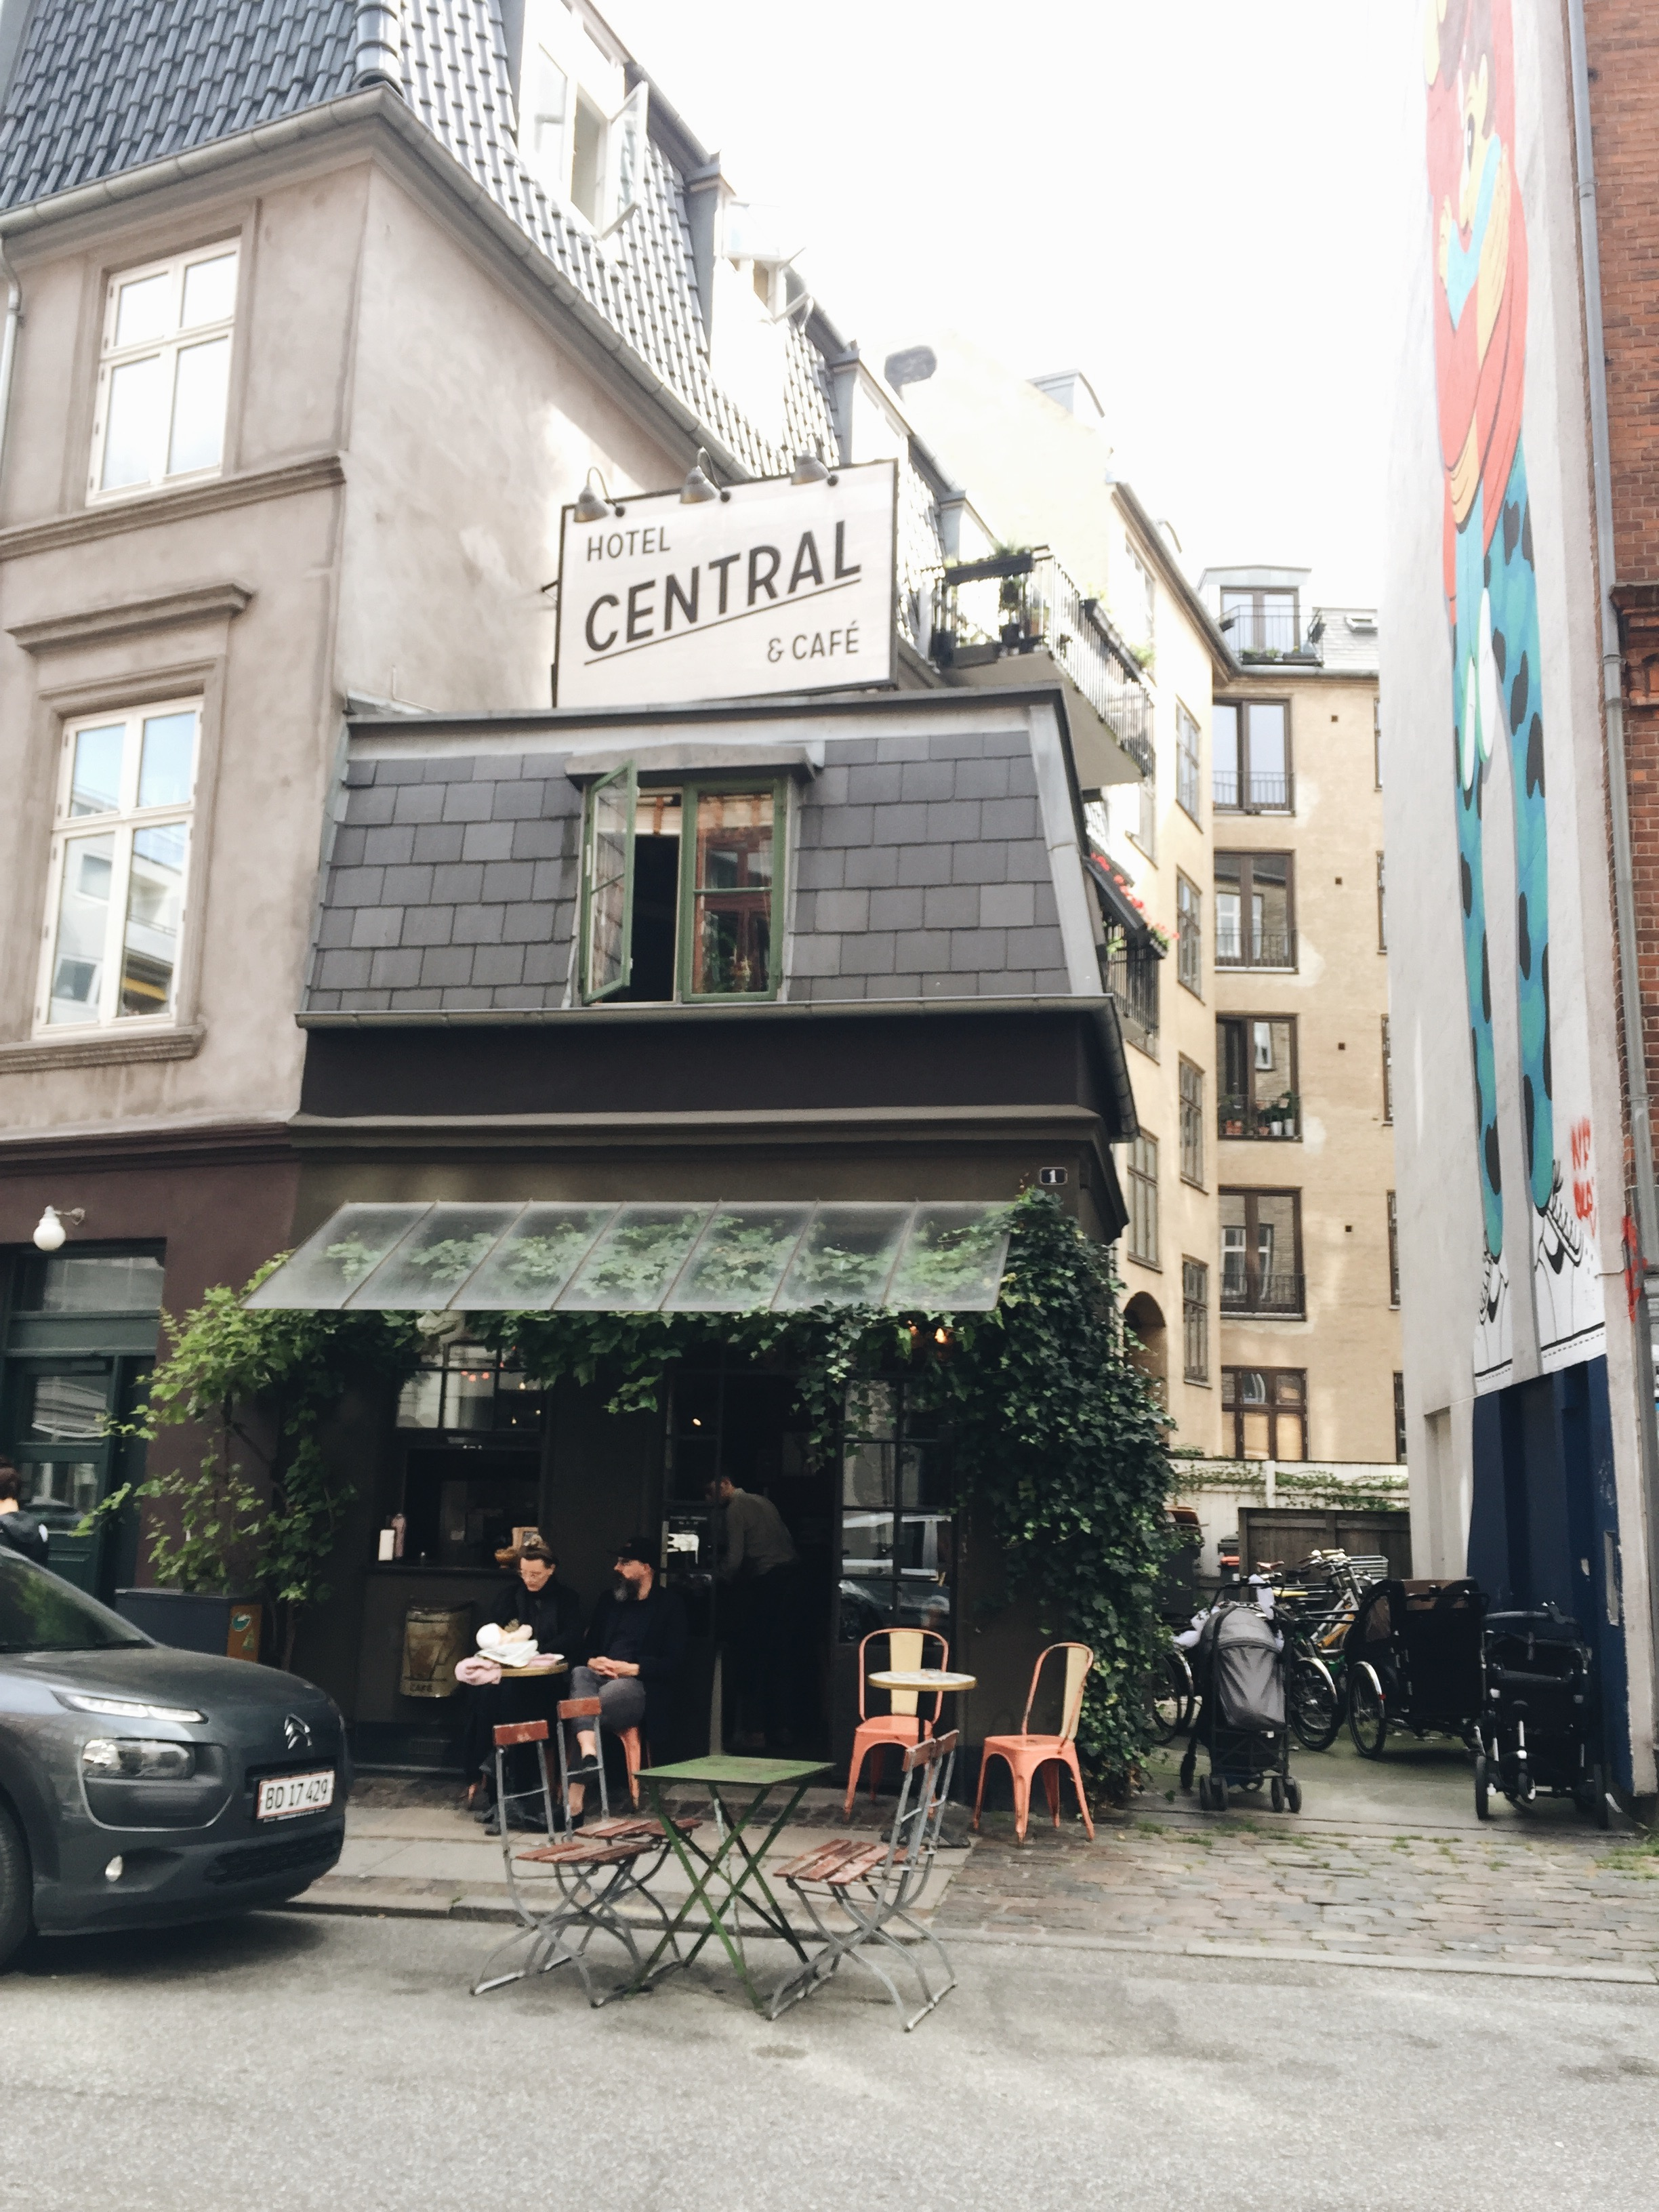 Central cafe has a 1-room hotel, but definitely worth checking out for brunch and coffee.